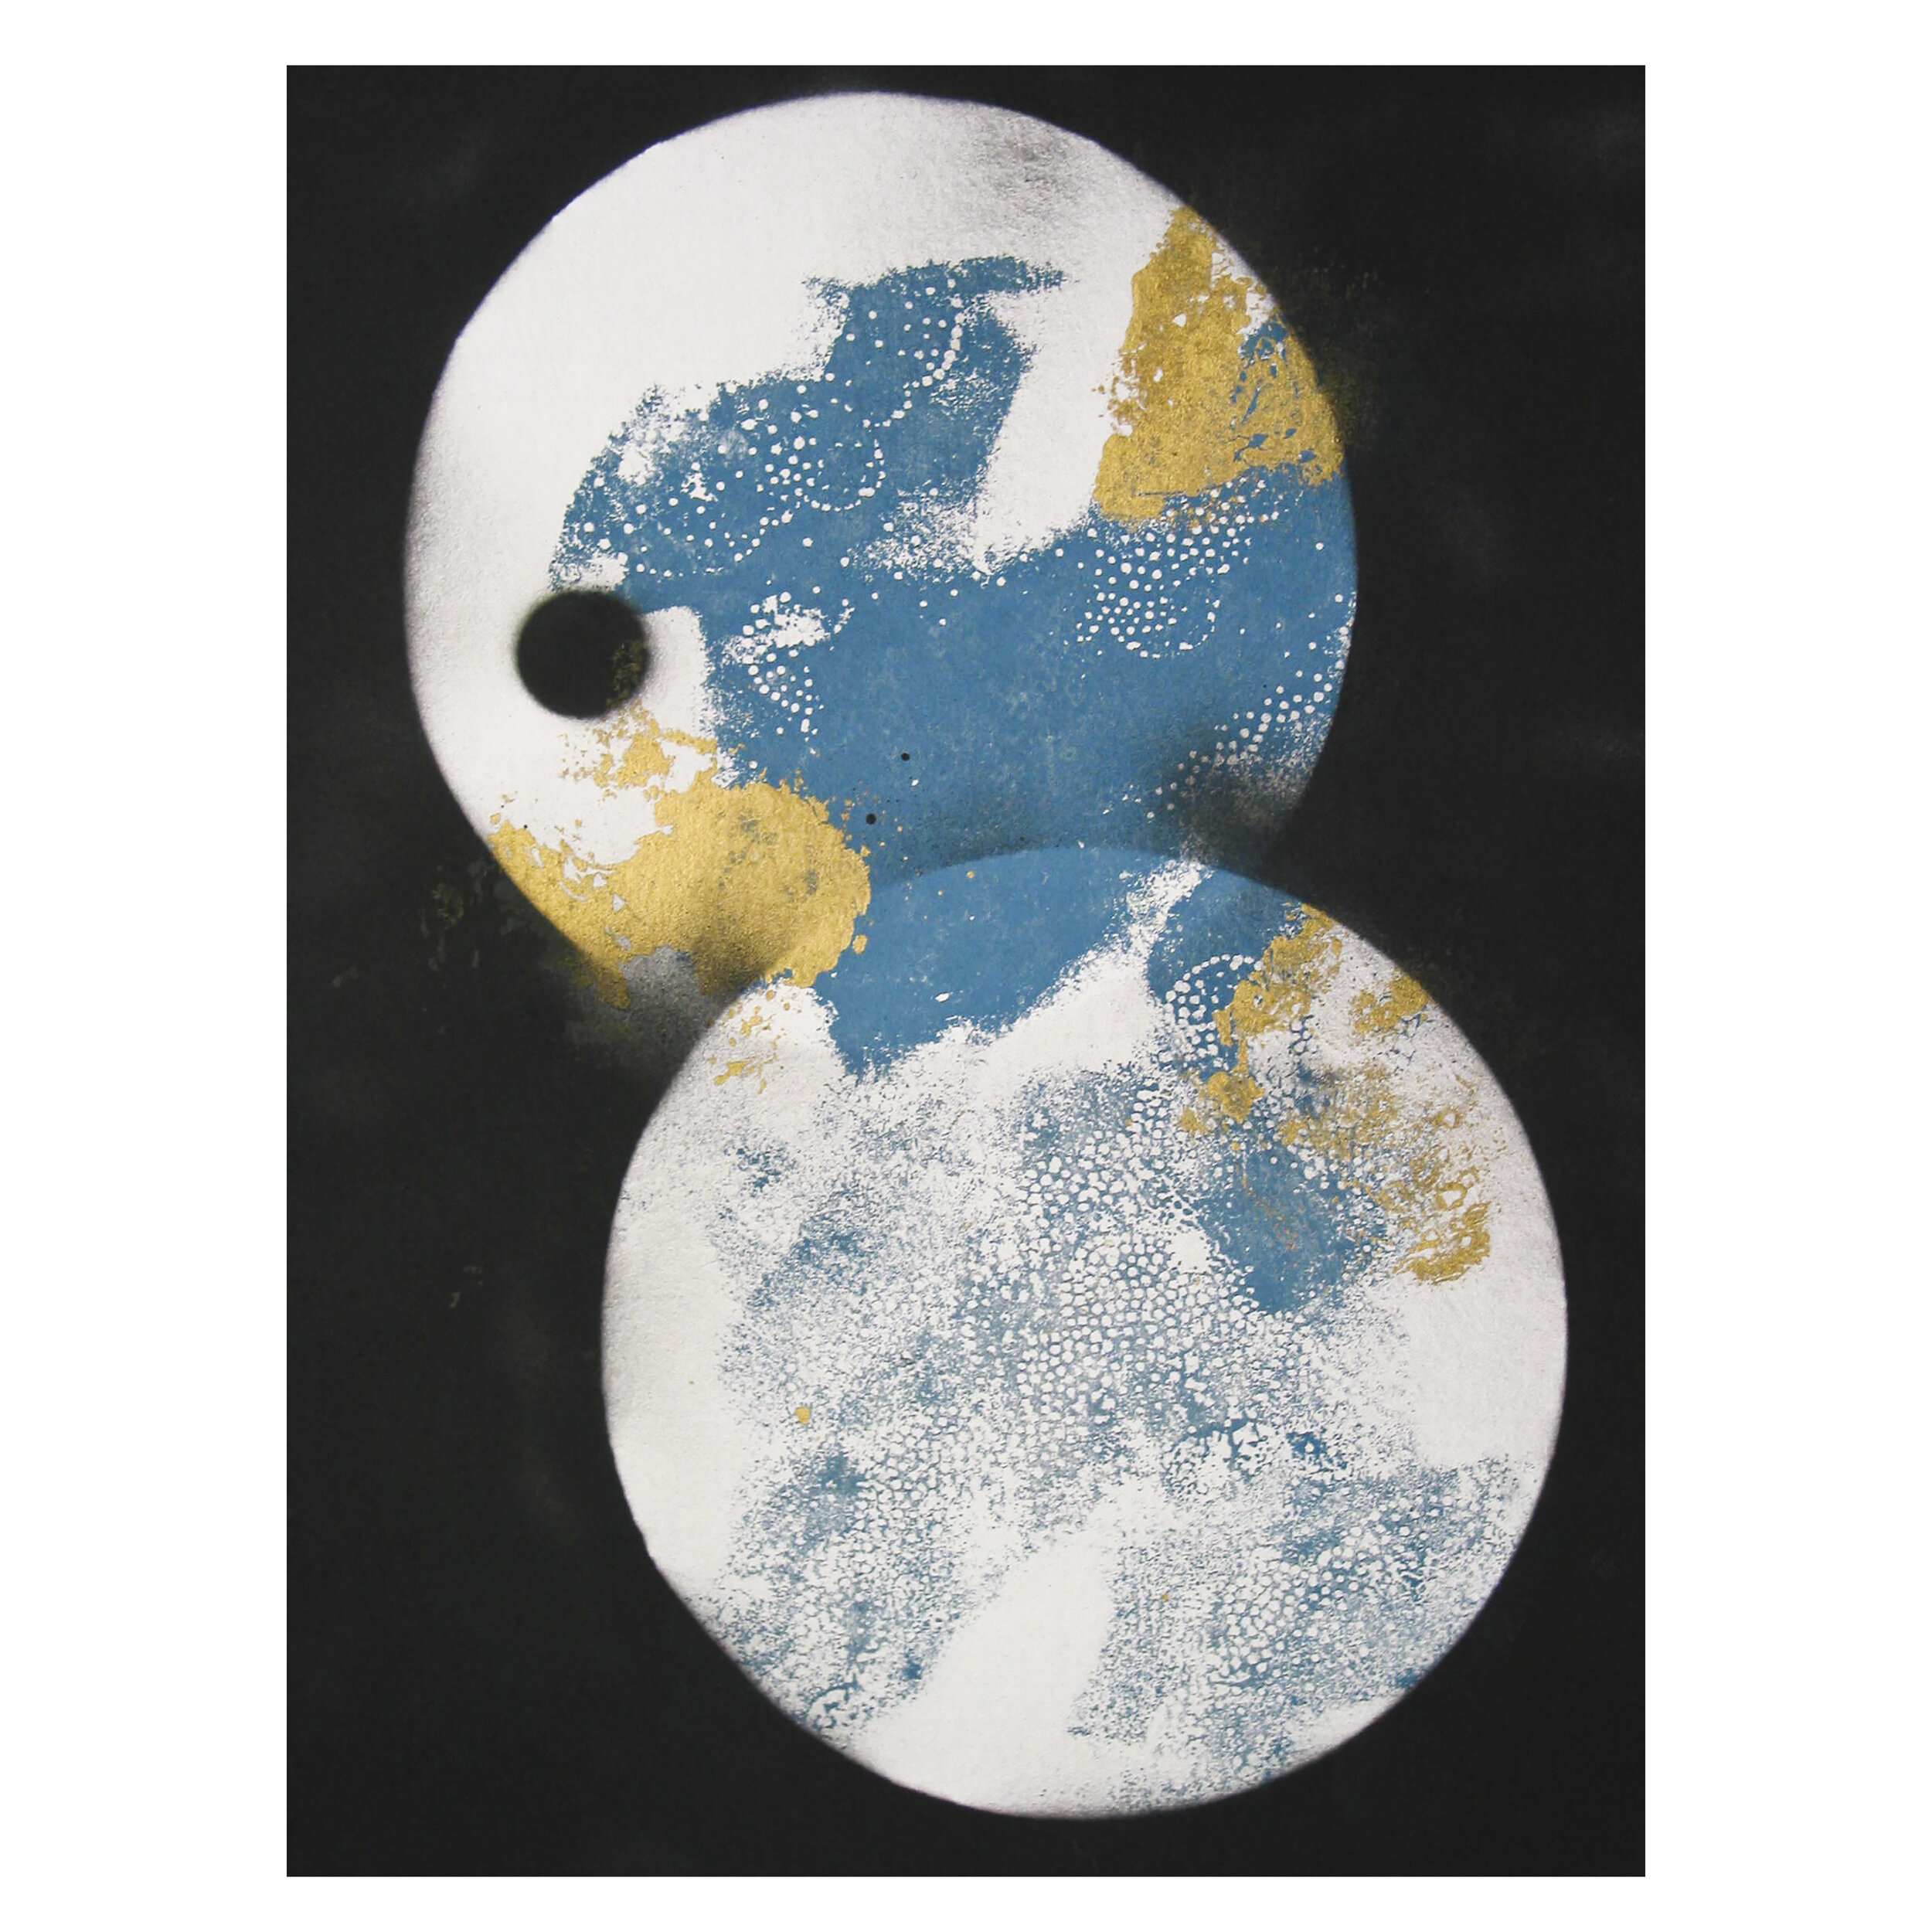 Asian inspired abstraction with dominant two circles in the middle covered by yellow and blue color and clouds, with the dark background at back